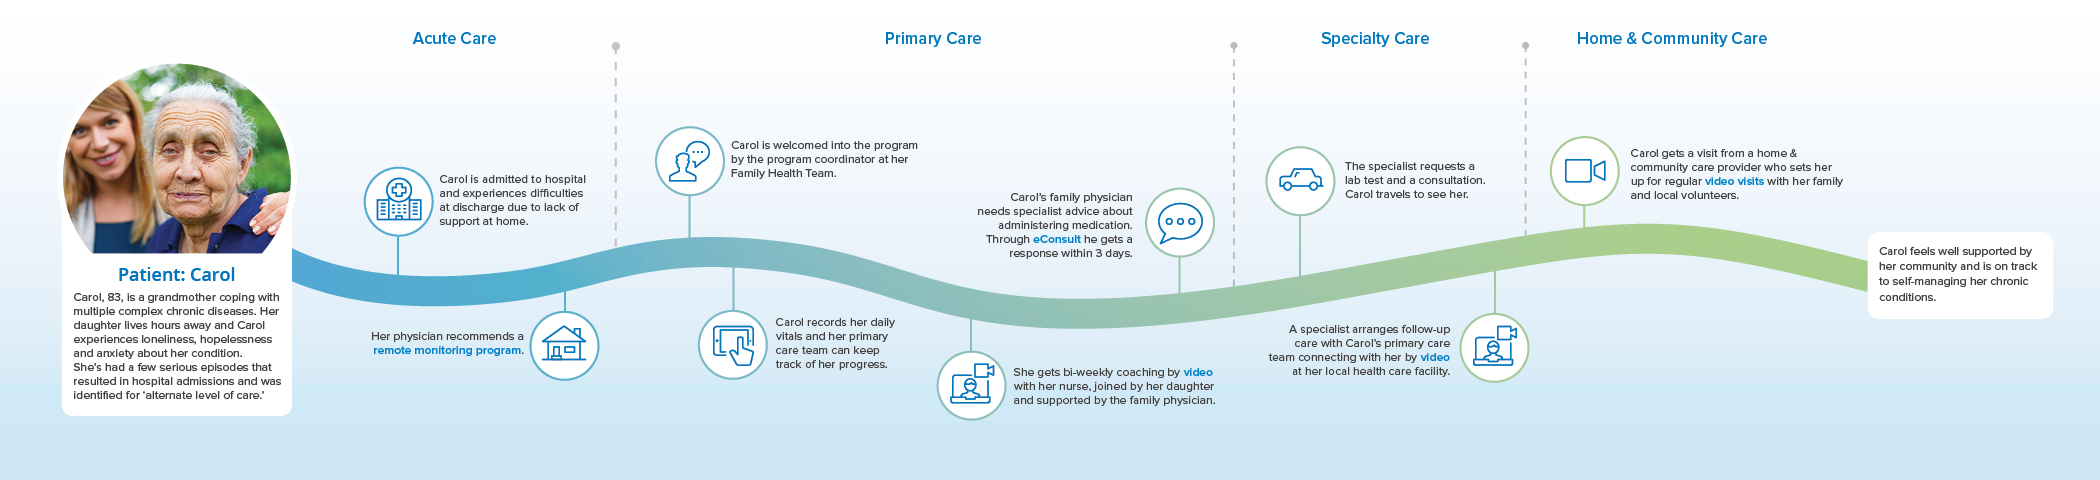 Seniors and Others with Chronic Care Needs patient journey image